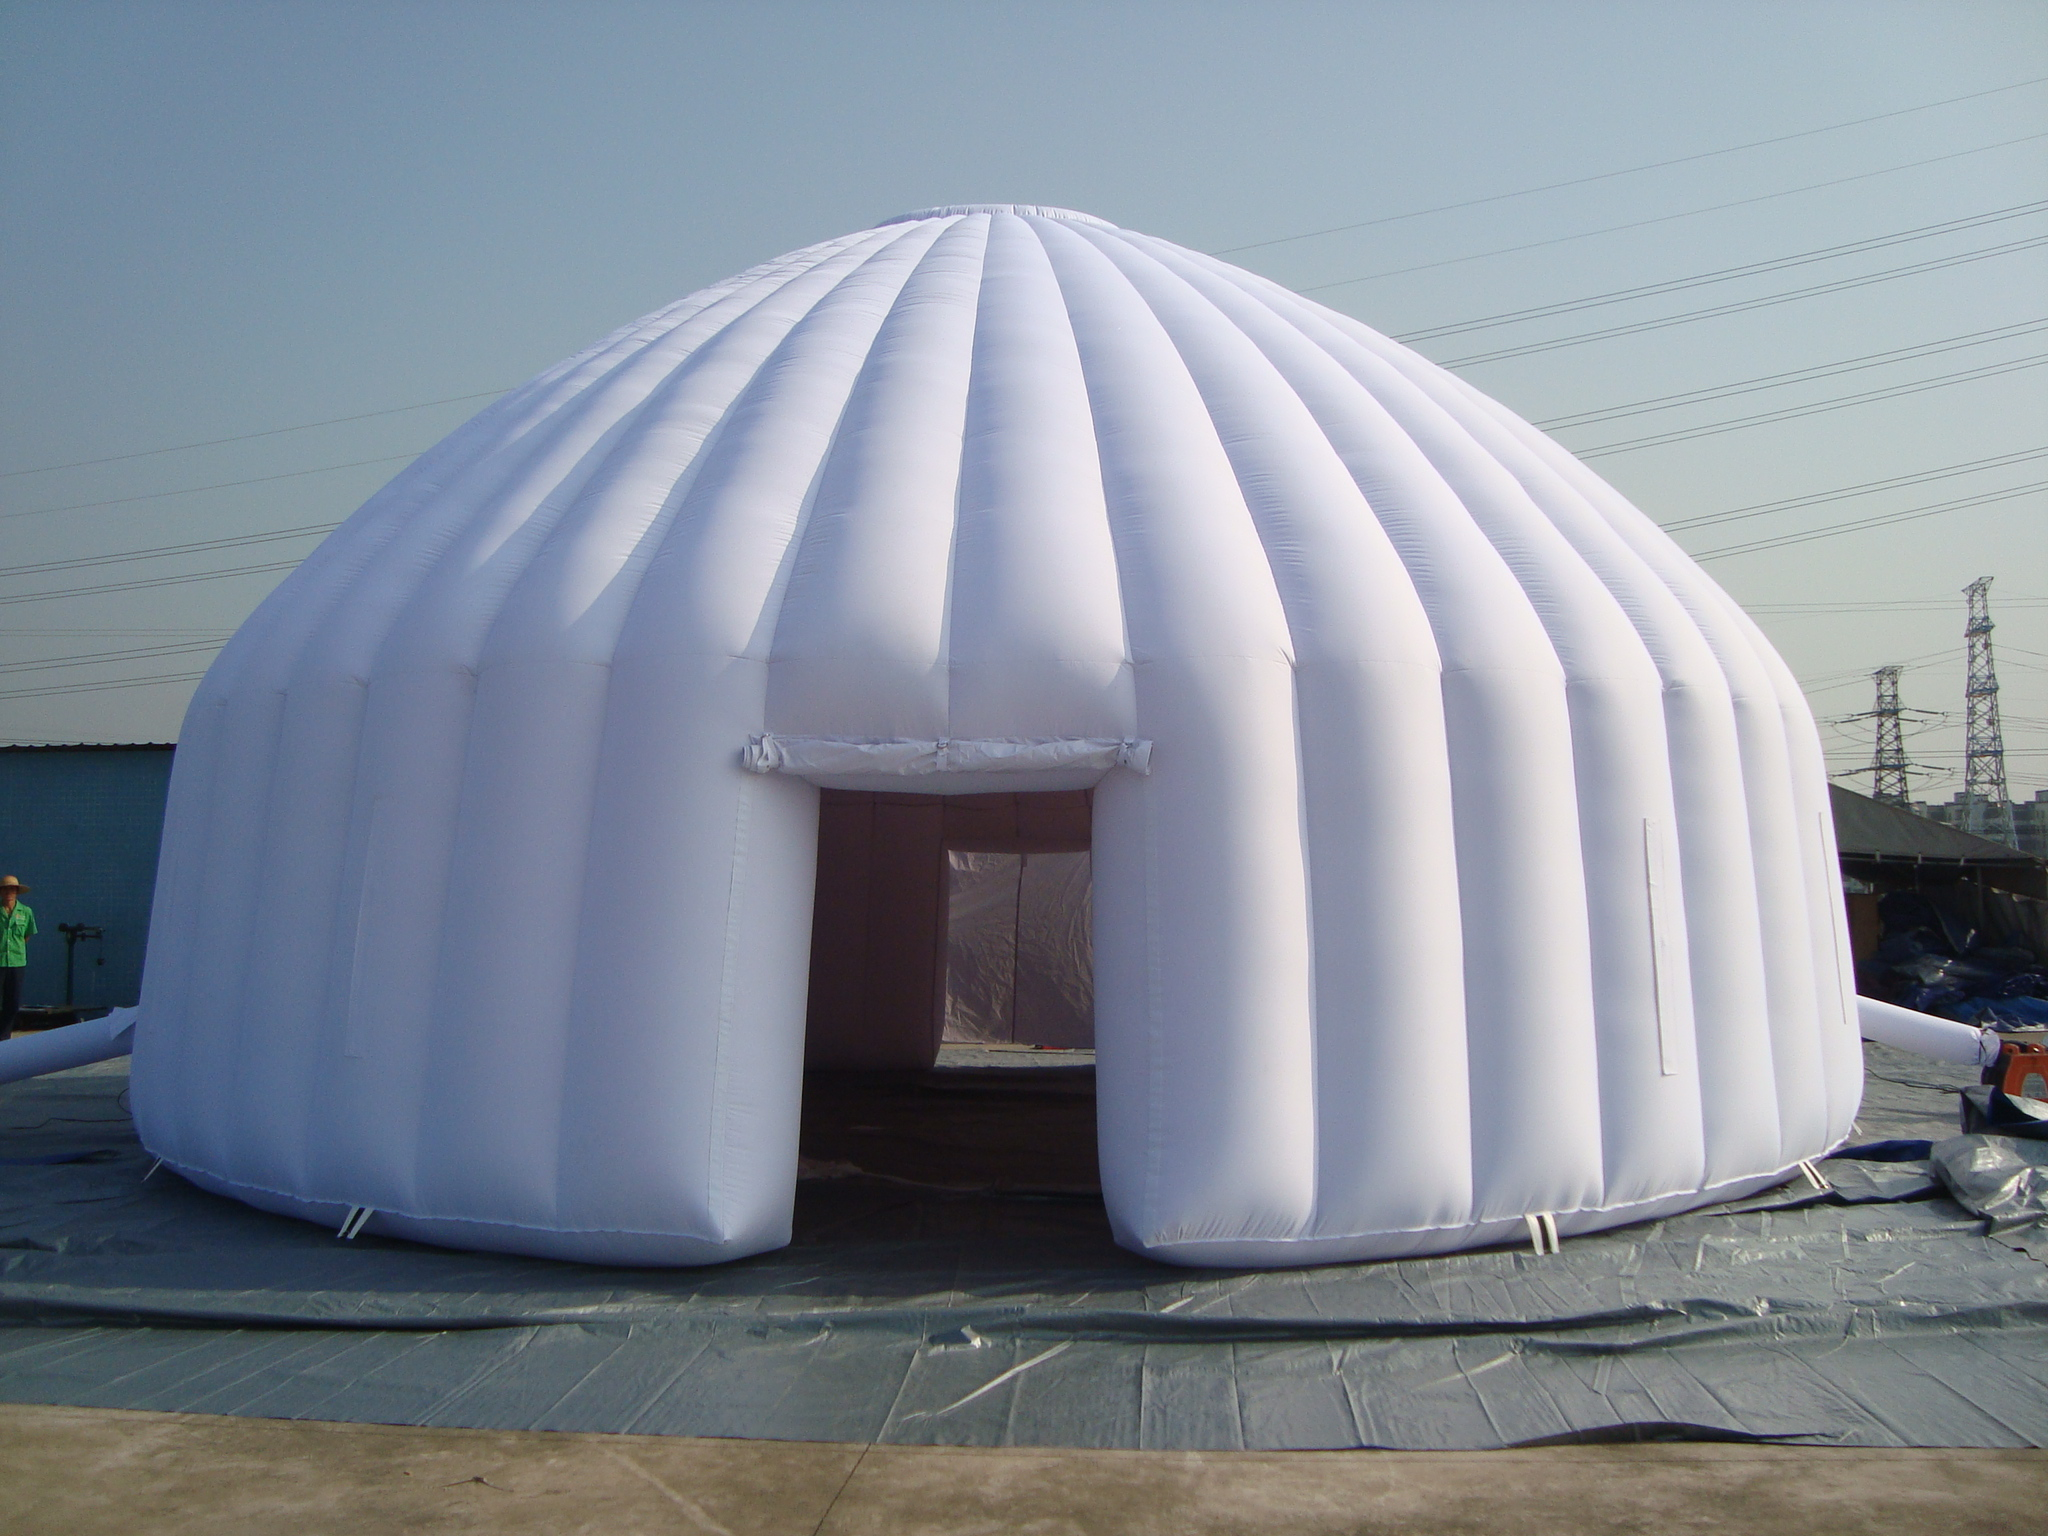 Here are some related igloos for your reference please check. & Yolloy Black tarpaulin tent double layer mobile inflatable tent ...